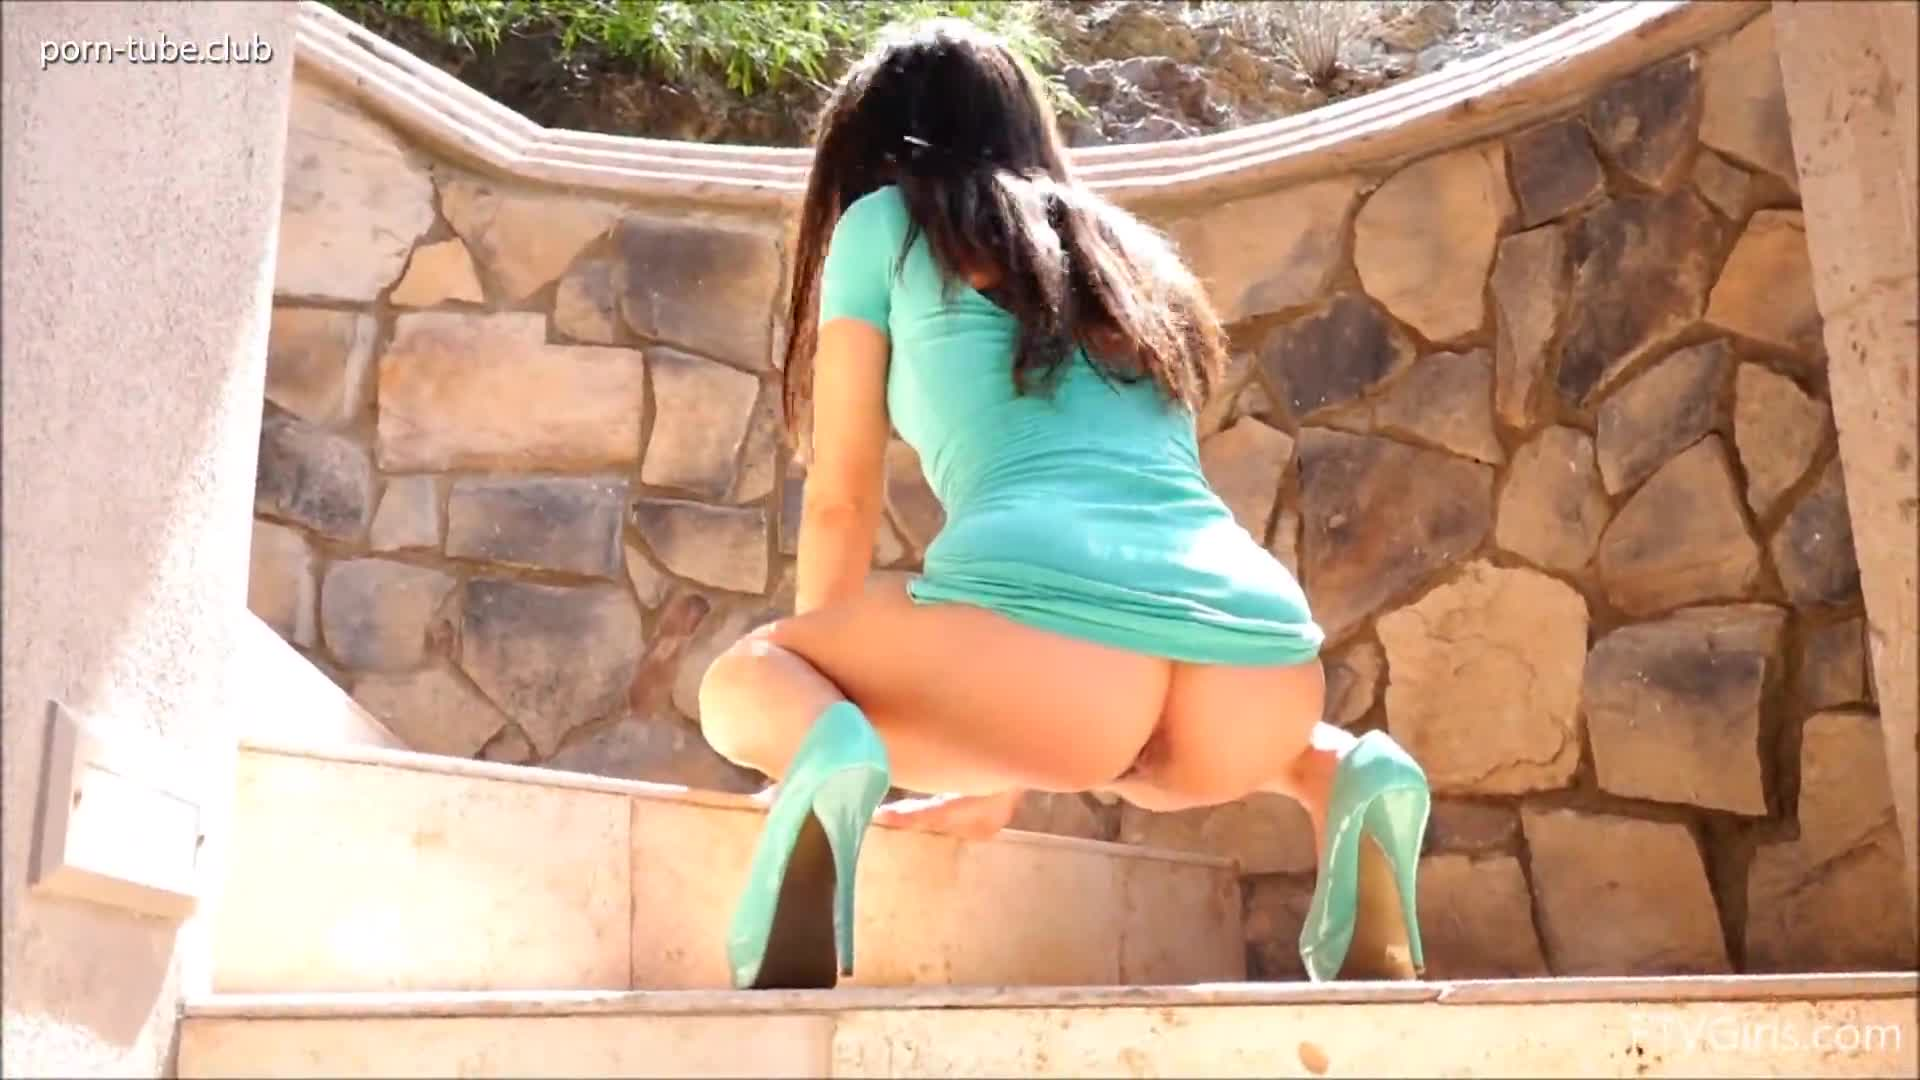 FTVGirls 17.11.15 Somara The Best Rear Views